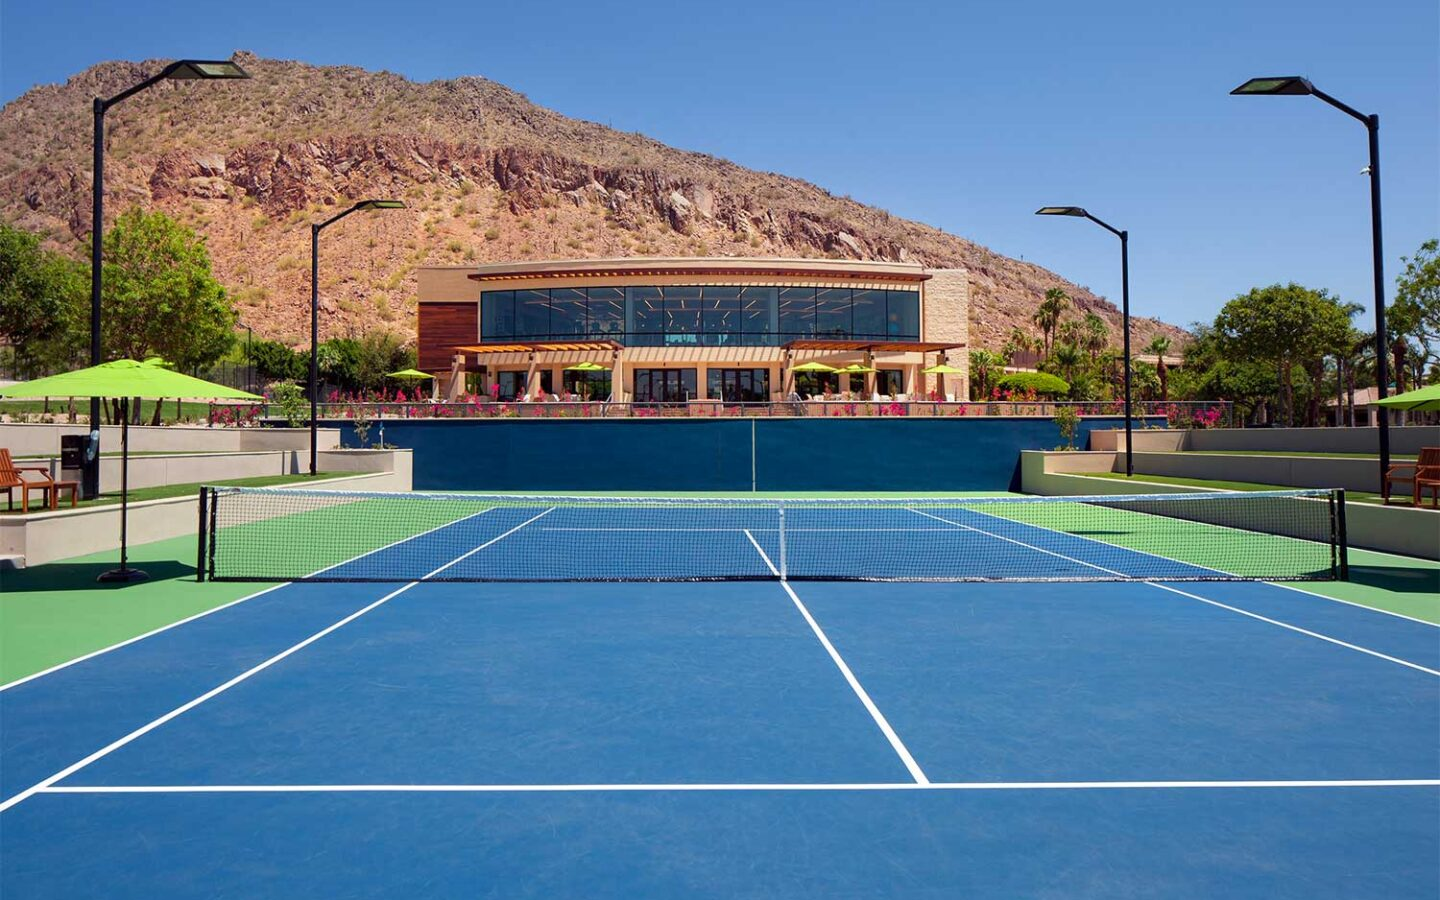 outdoor tennis court at The Phoenician